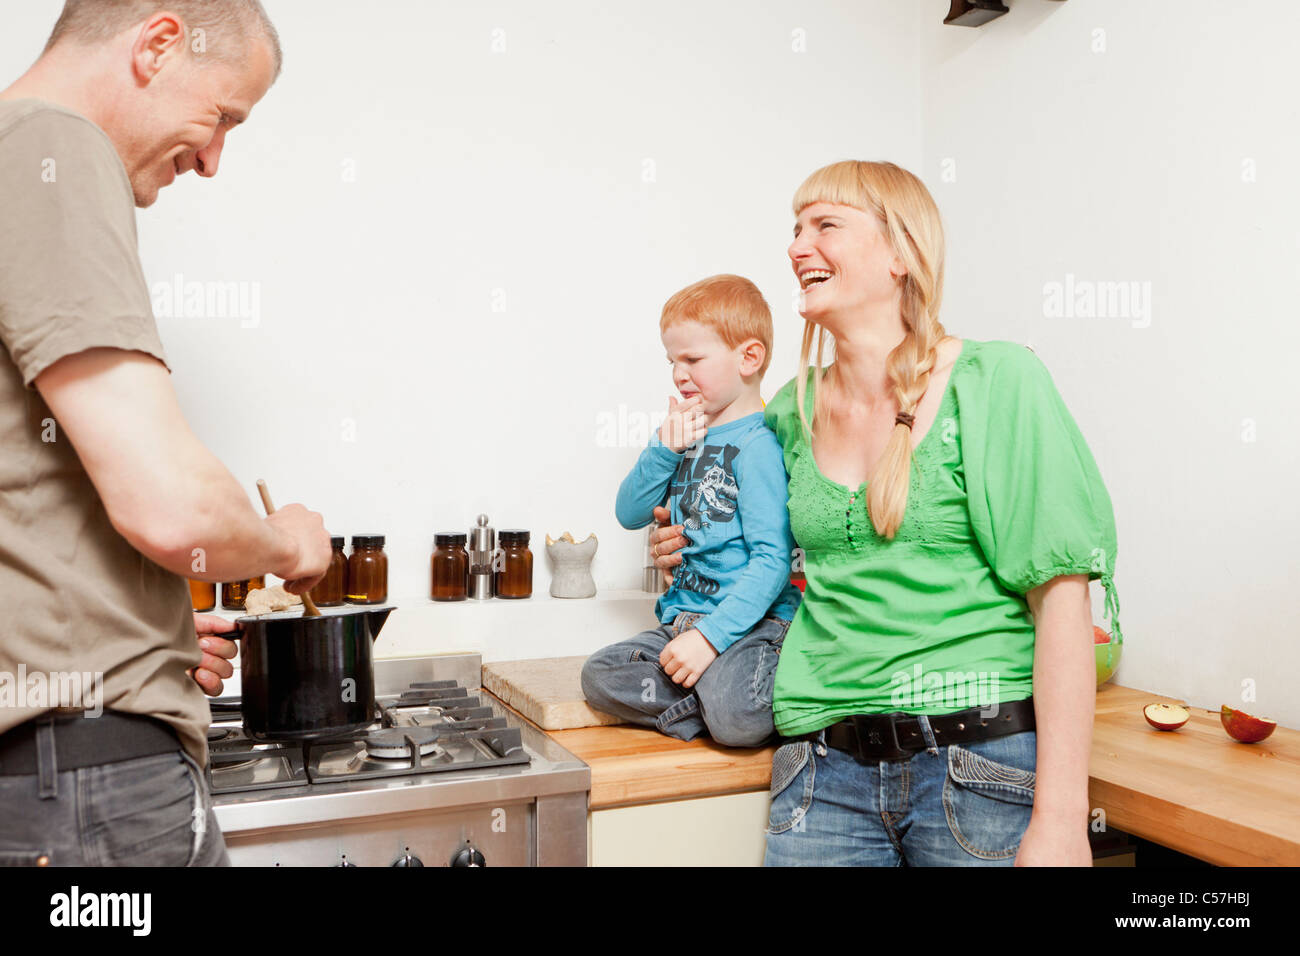 Parents cooking for reluctant son - Stock Image